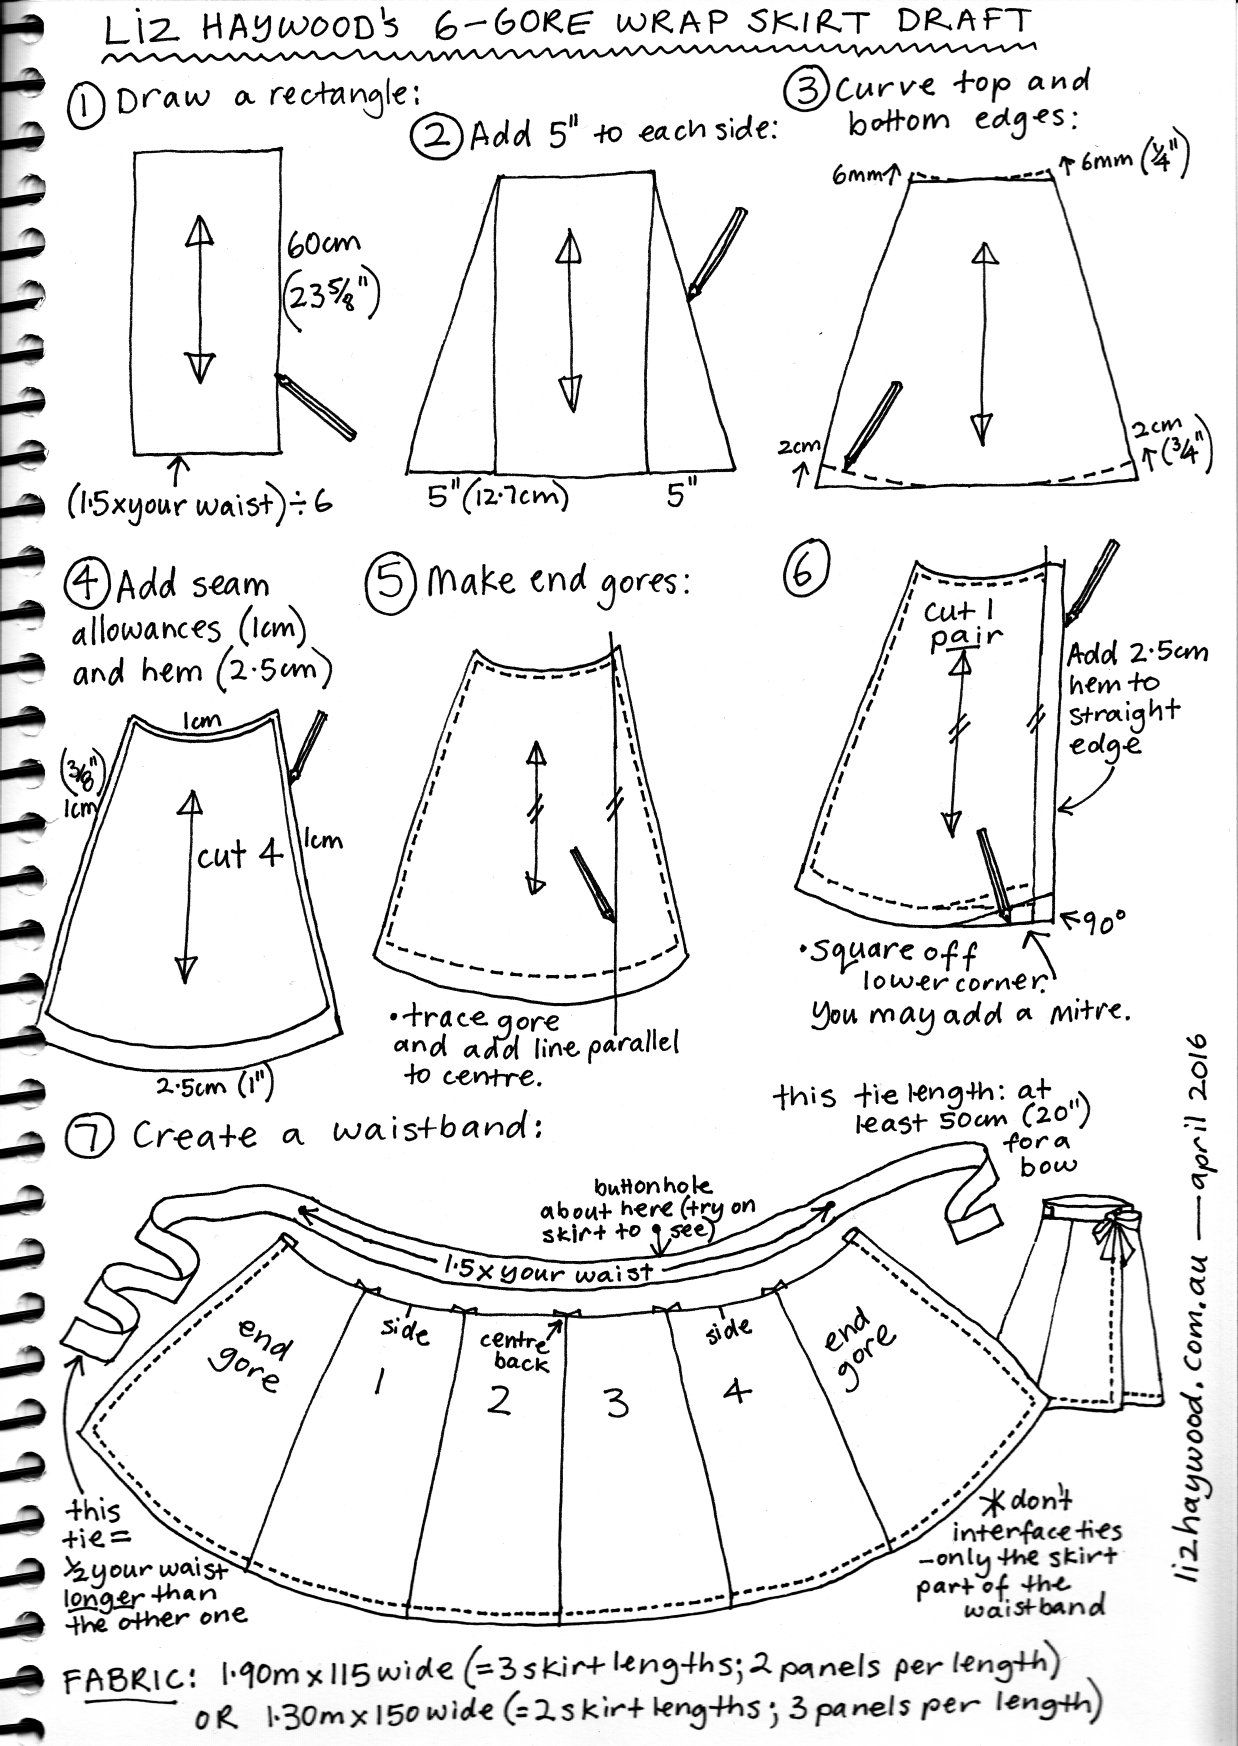 Free wrap skirt pattern summary | Sewing Ideas | Pinterest | Costura ...